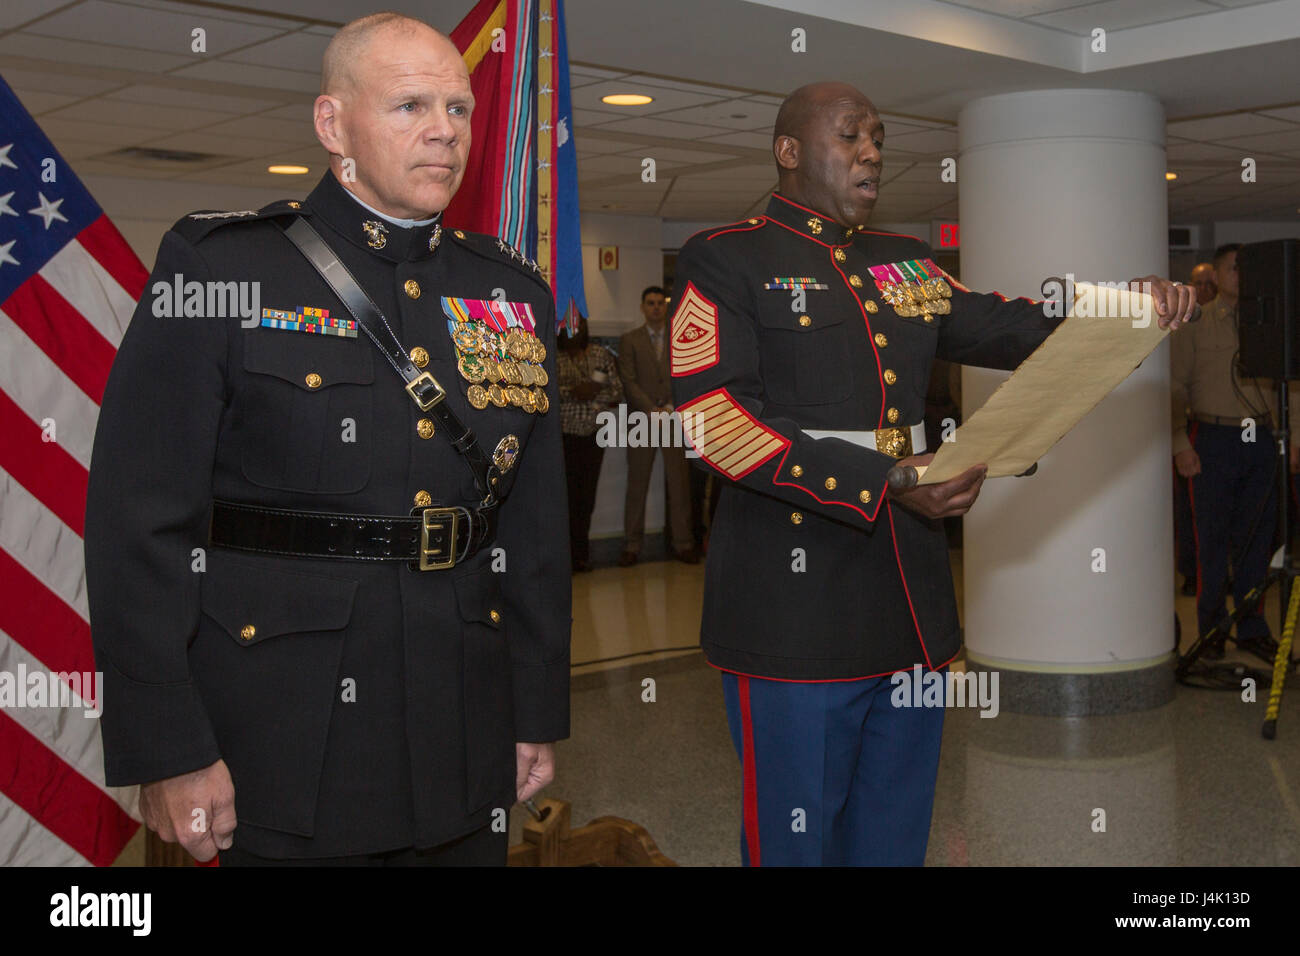 Marine Birthday Cake Ceremony